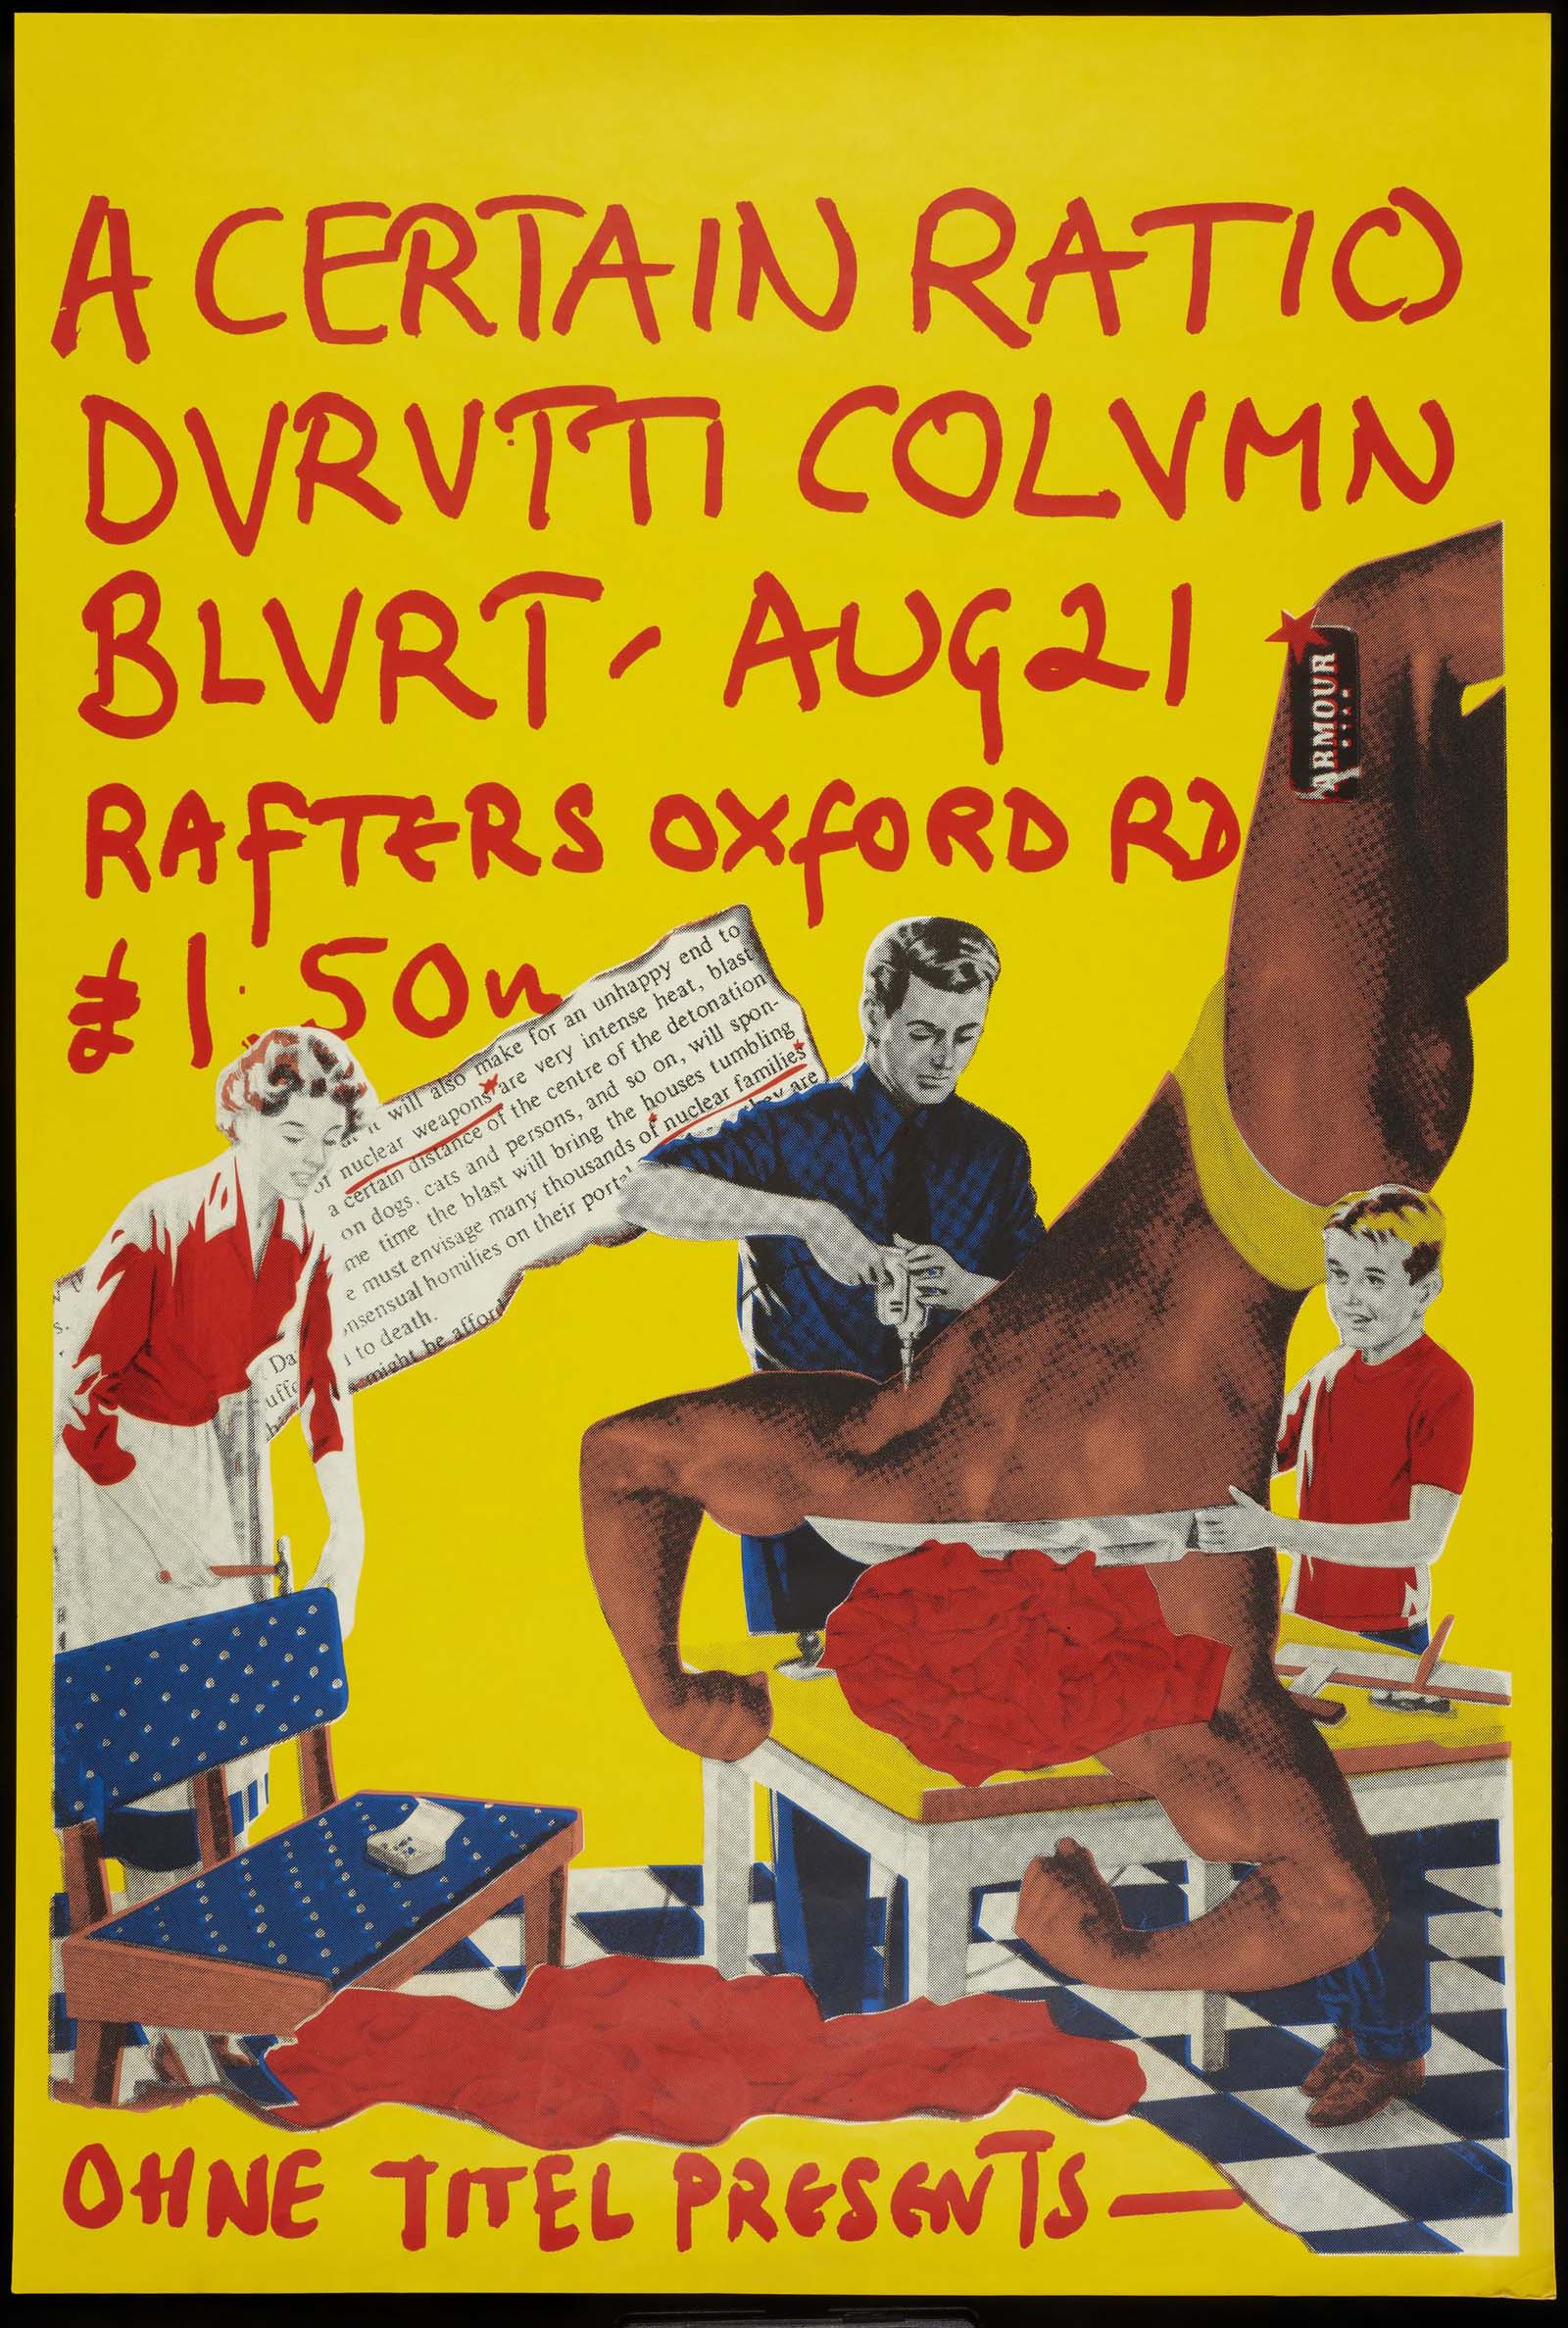 yellow gigi poster for durutti column and blurt with collaged figures in the foreground